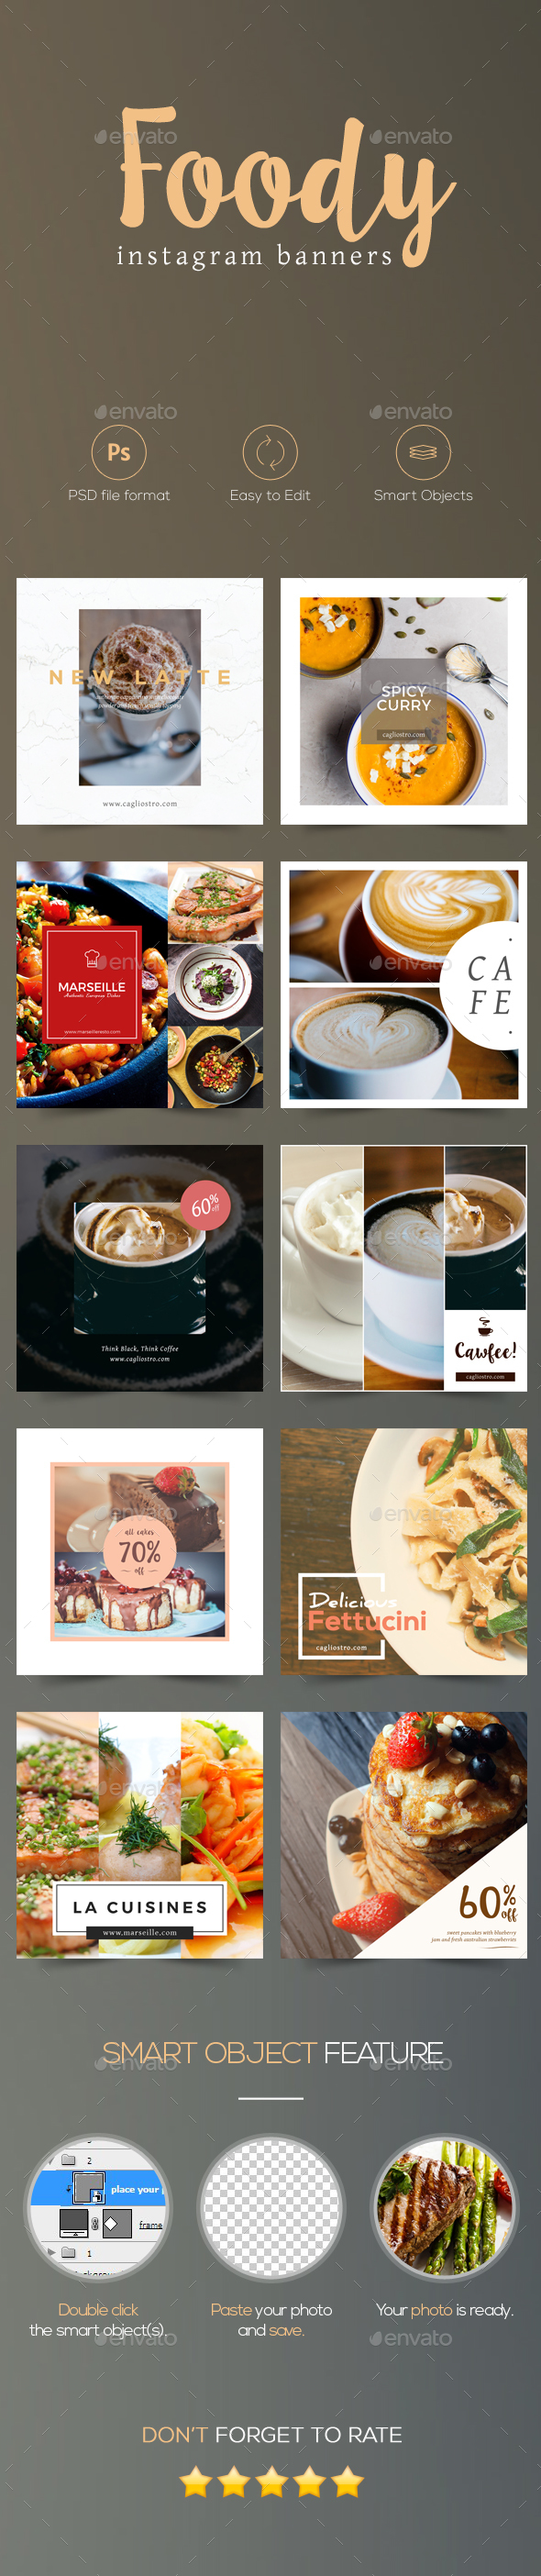 Foody - Cafe and Restaurant Instagram Banners - Miscellaneous Social Media